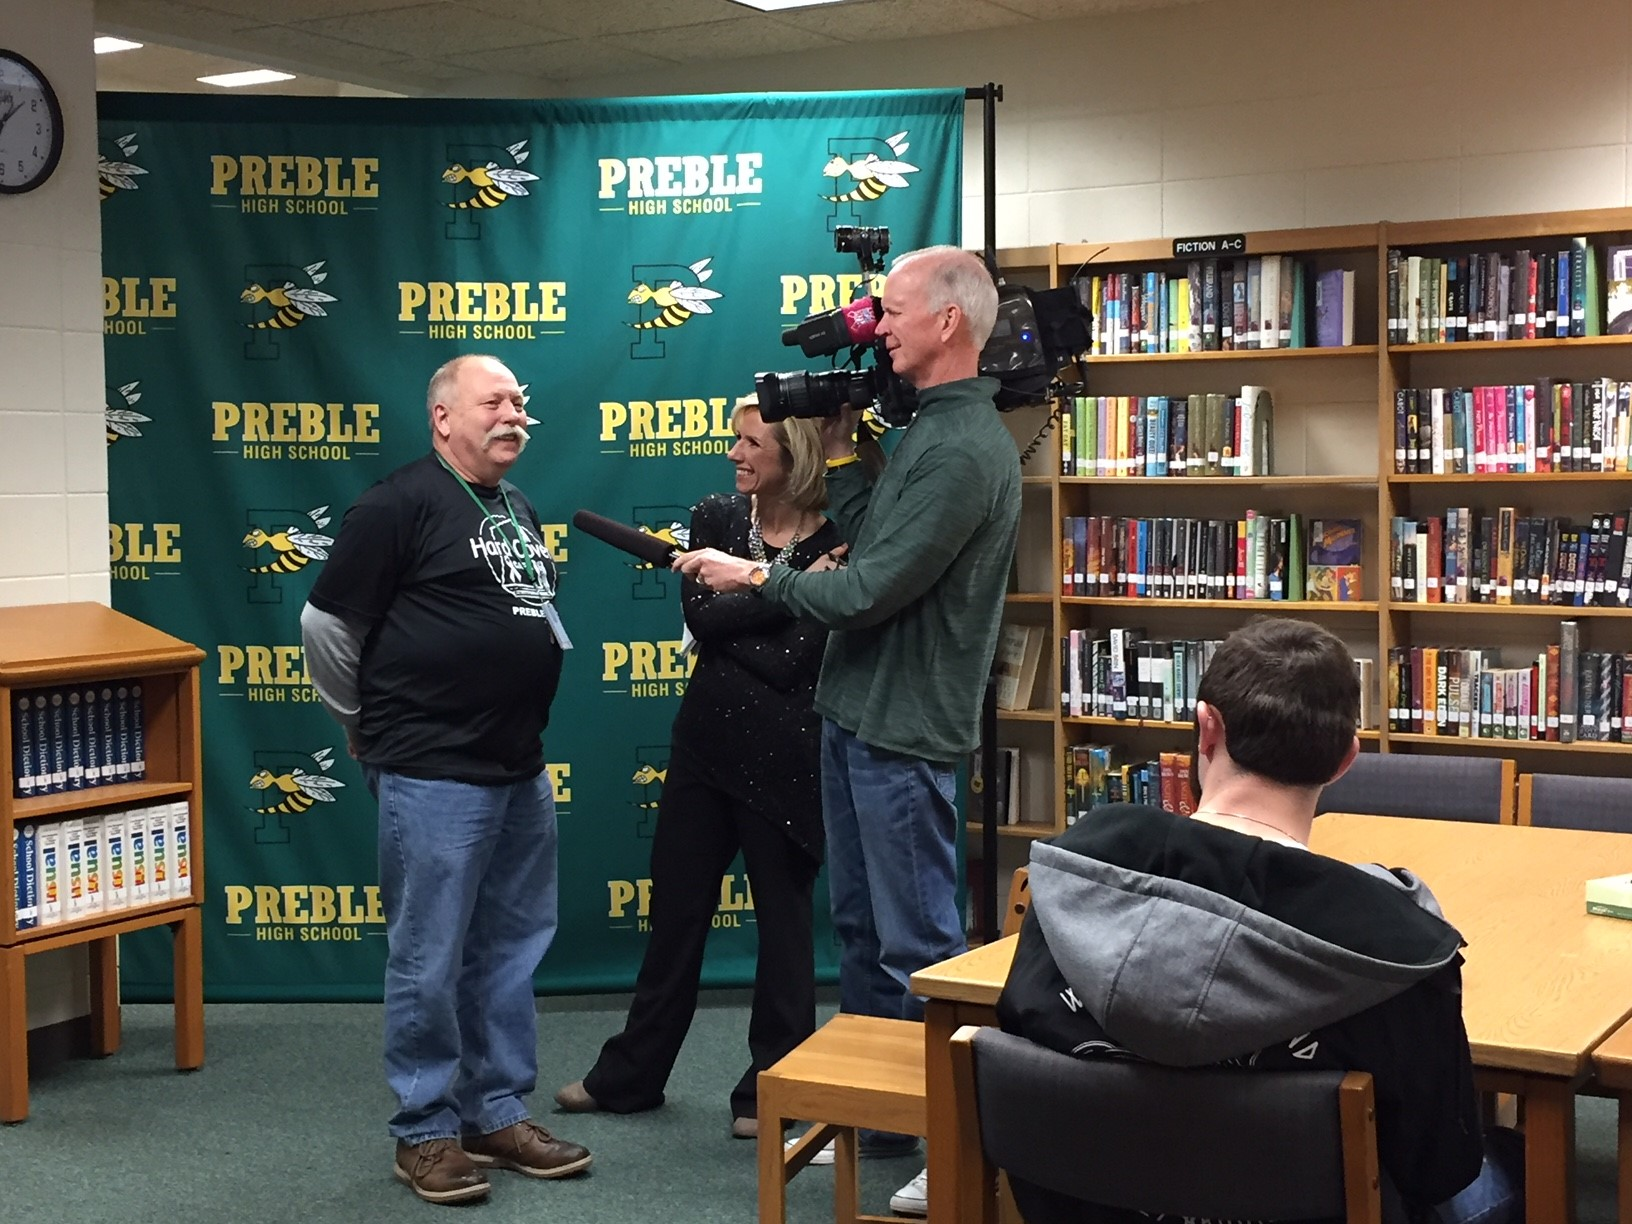 Larry Laraby, an alternative education teacher at Green Bay Preble High School, is interviewed by FOX 11's Michelle Melby Feb. 7, 2018, after being announced as a Golden Apple Award recipient. (WLUK/Donna Fischer)